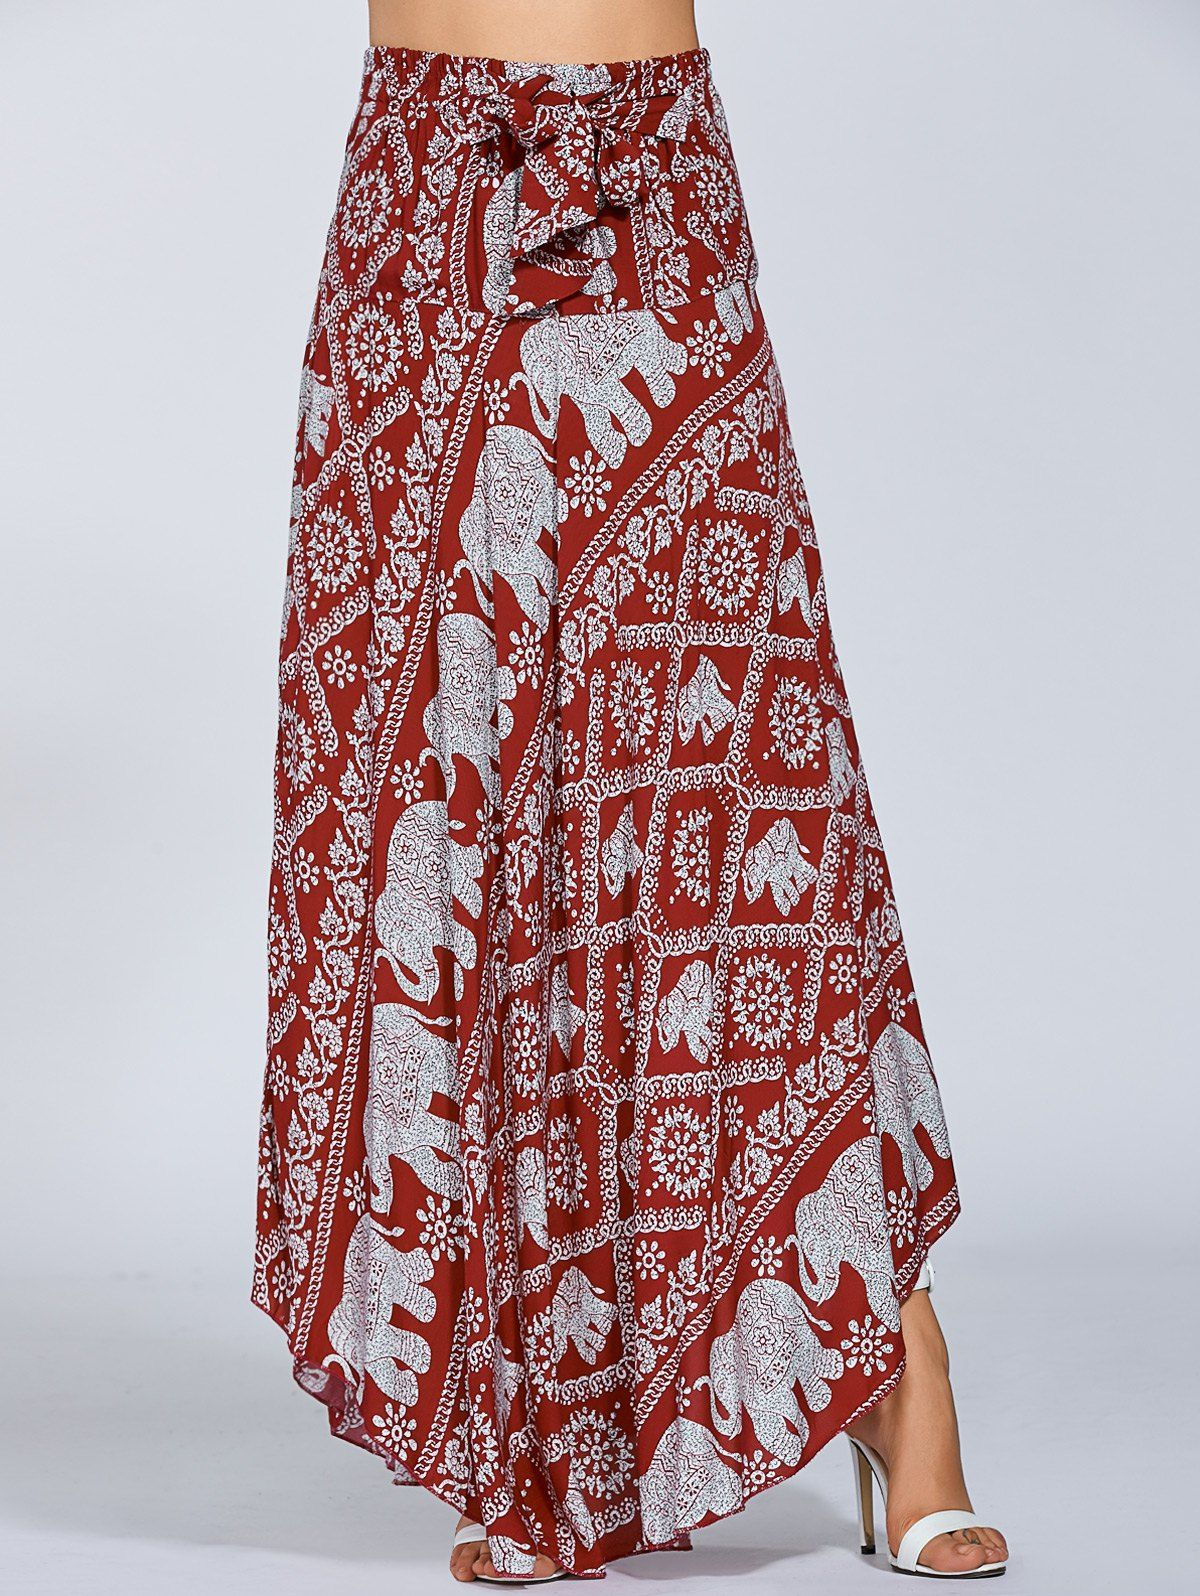 37772b99f5 High Waisted Elephant Print Maxi African Print Skirt - RED ONE SIZE ...